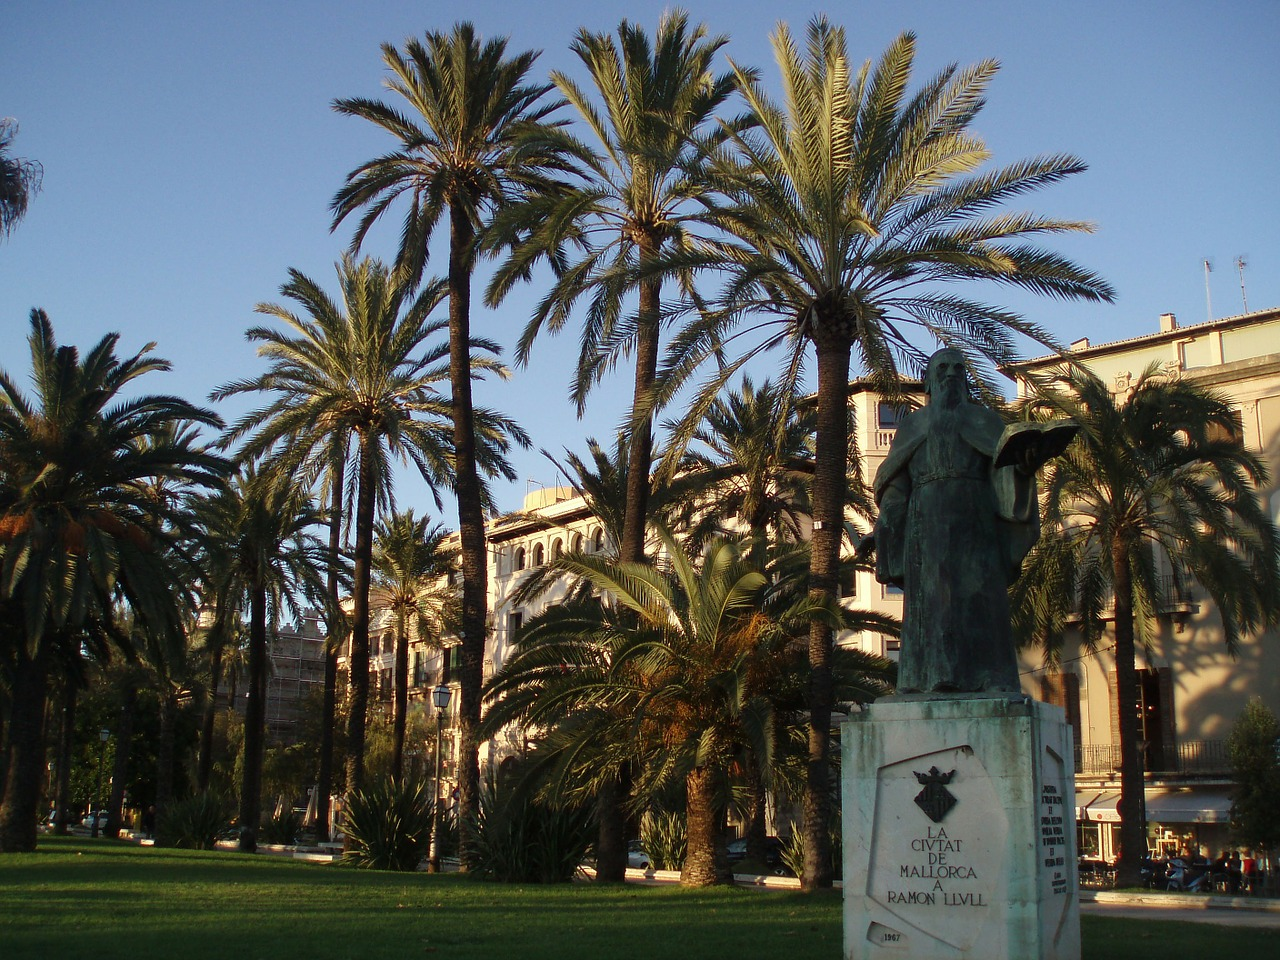 palm trees monument palma de mallorca free photo